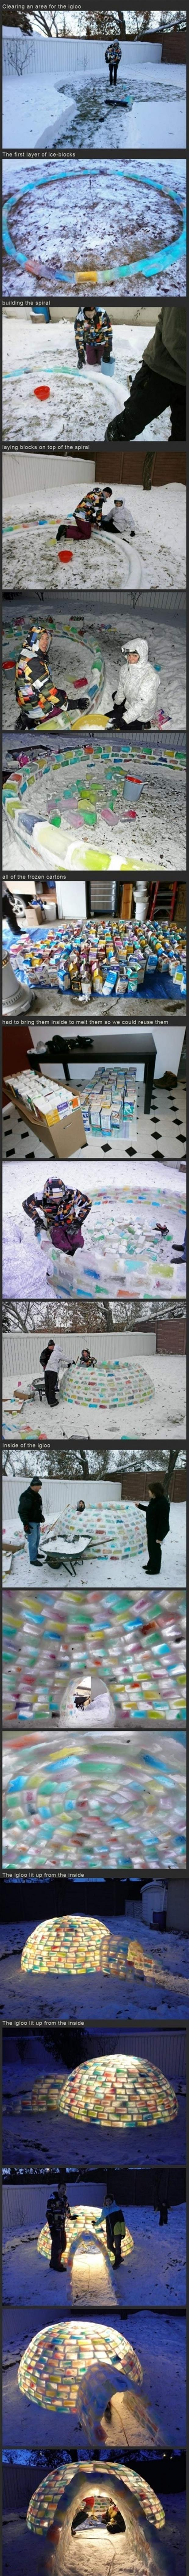 the how to build an igloo